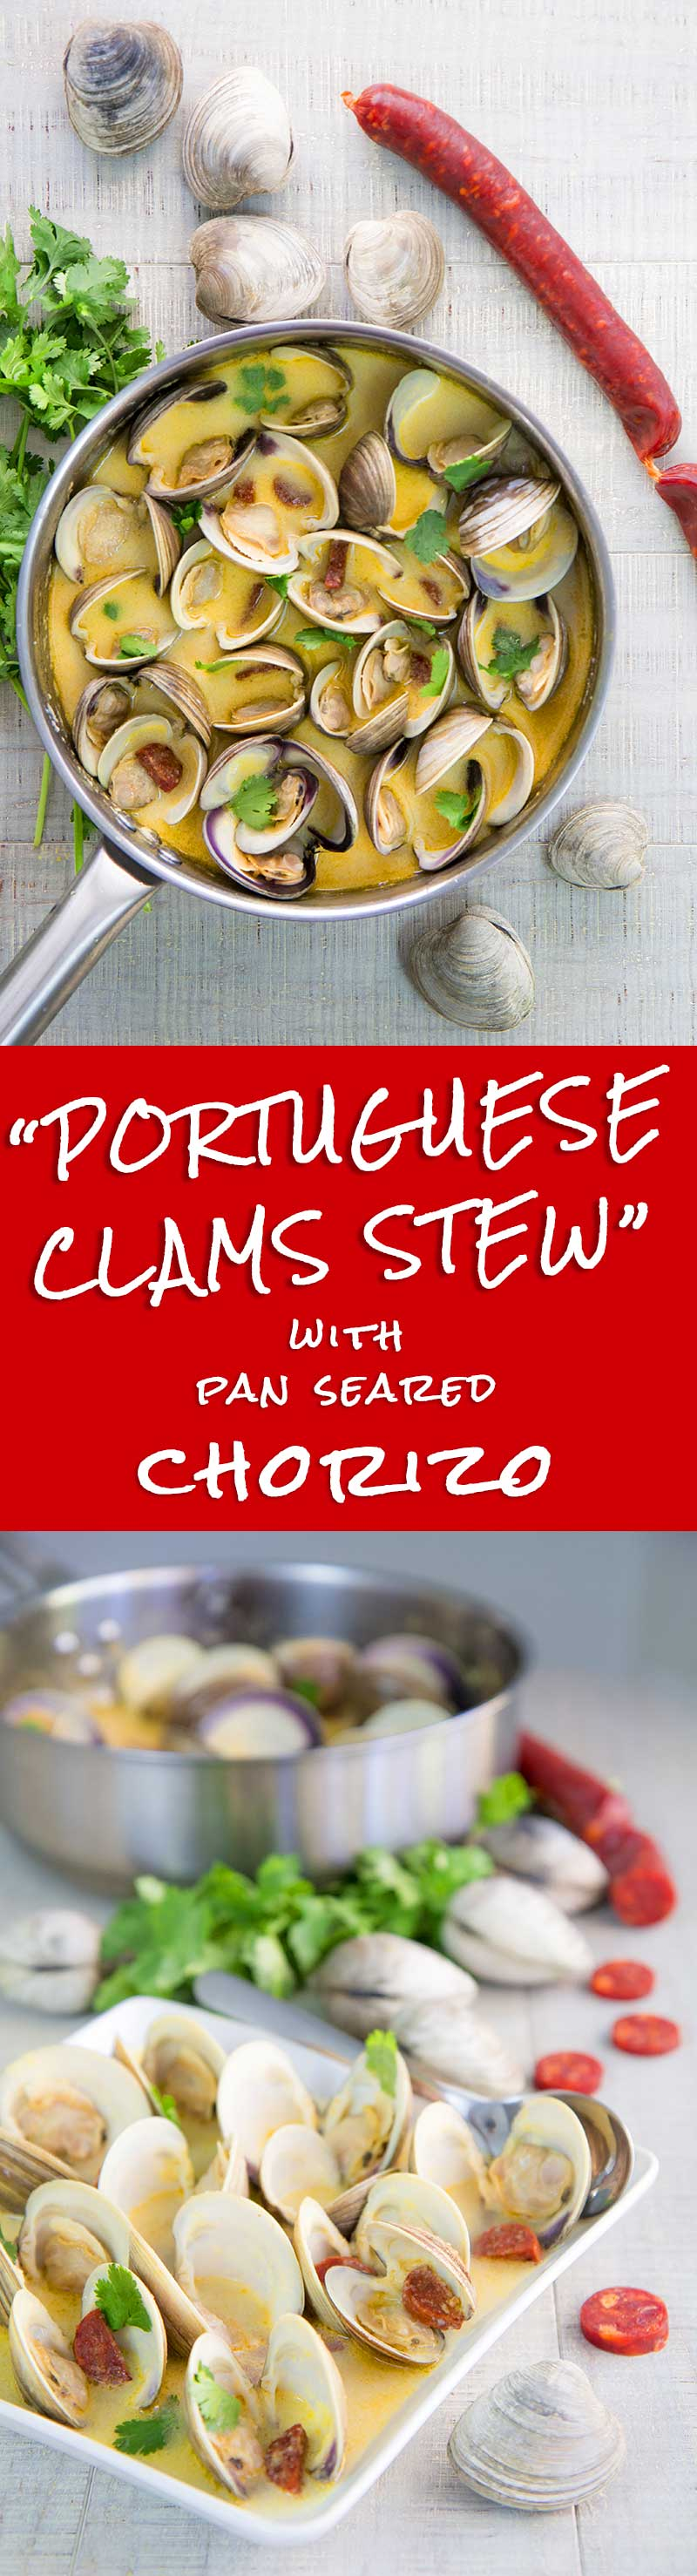 PORTUGUESE CLAMS STEW RECIPE with chorizo and white wine sauce